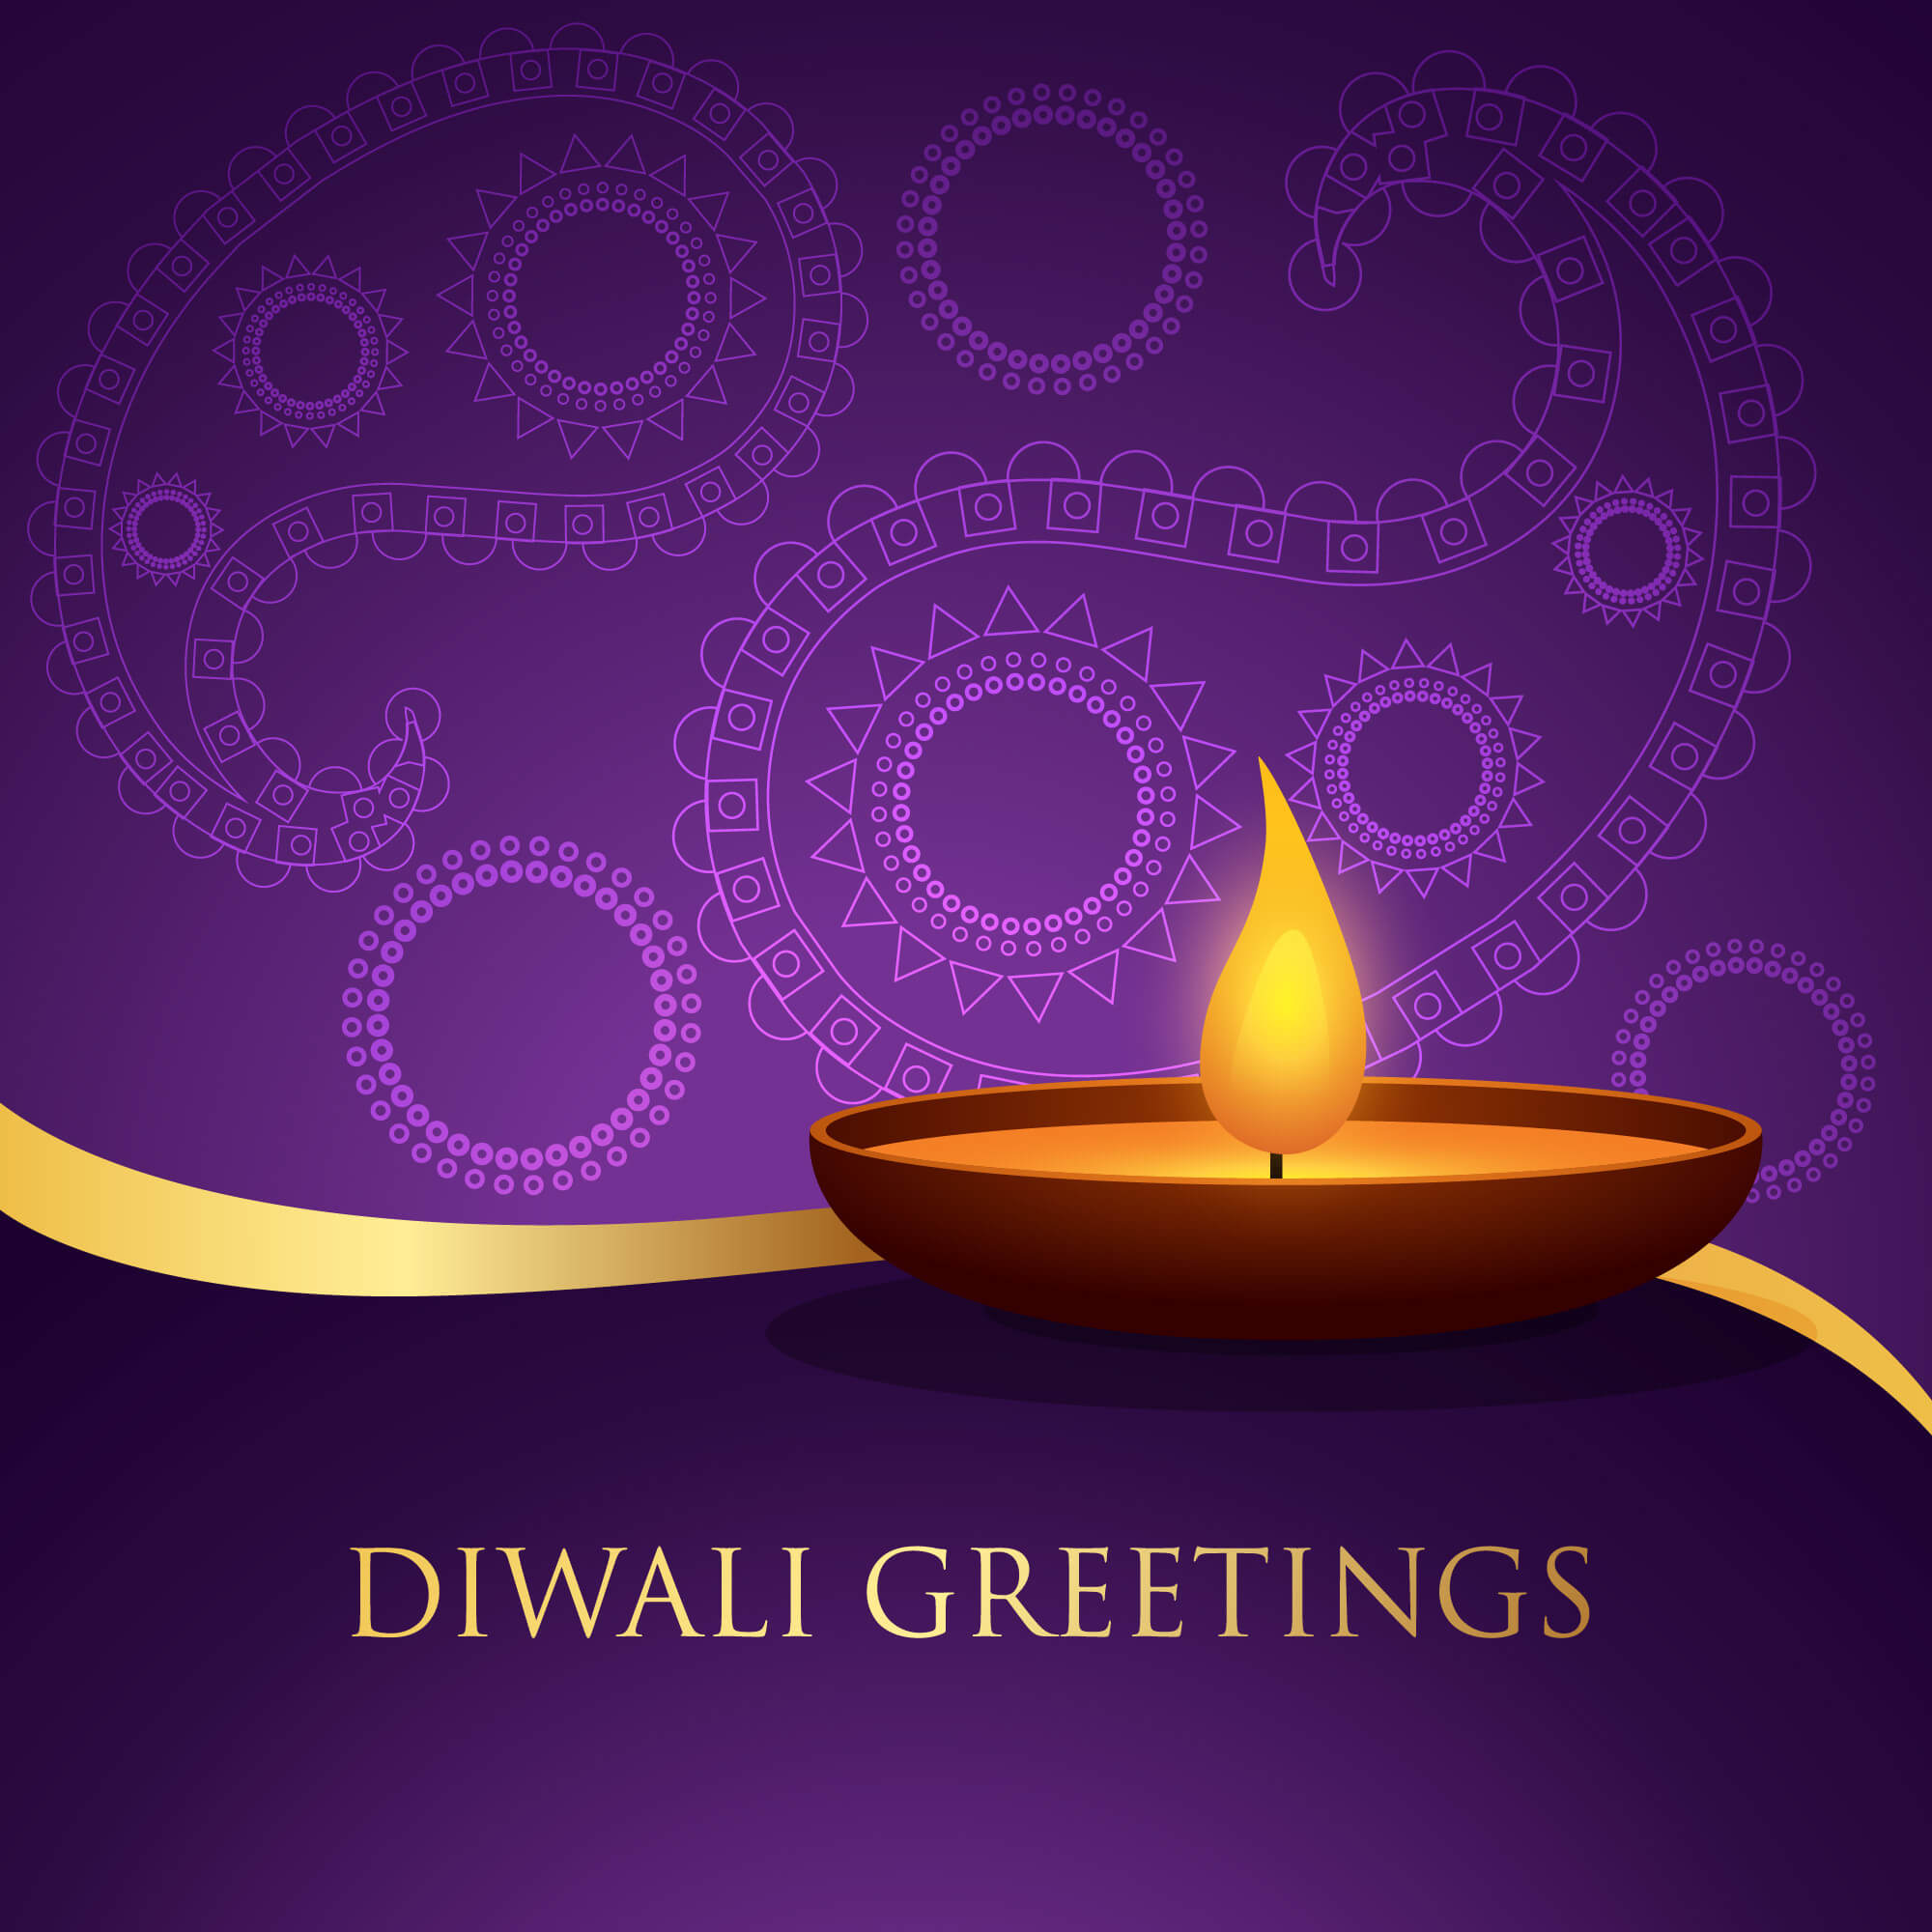 Happy diwali greetings lamp hd wallpaper m4hsunfo